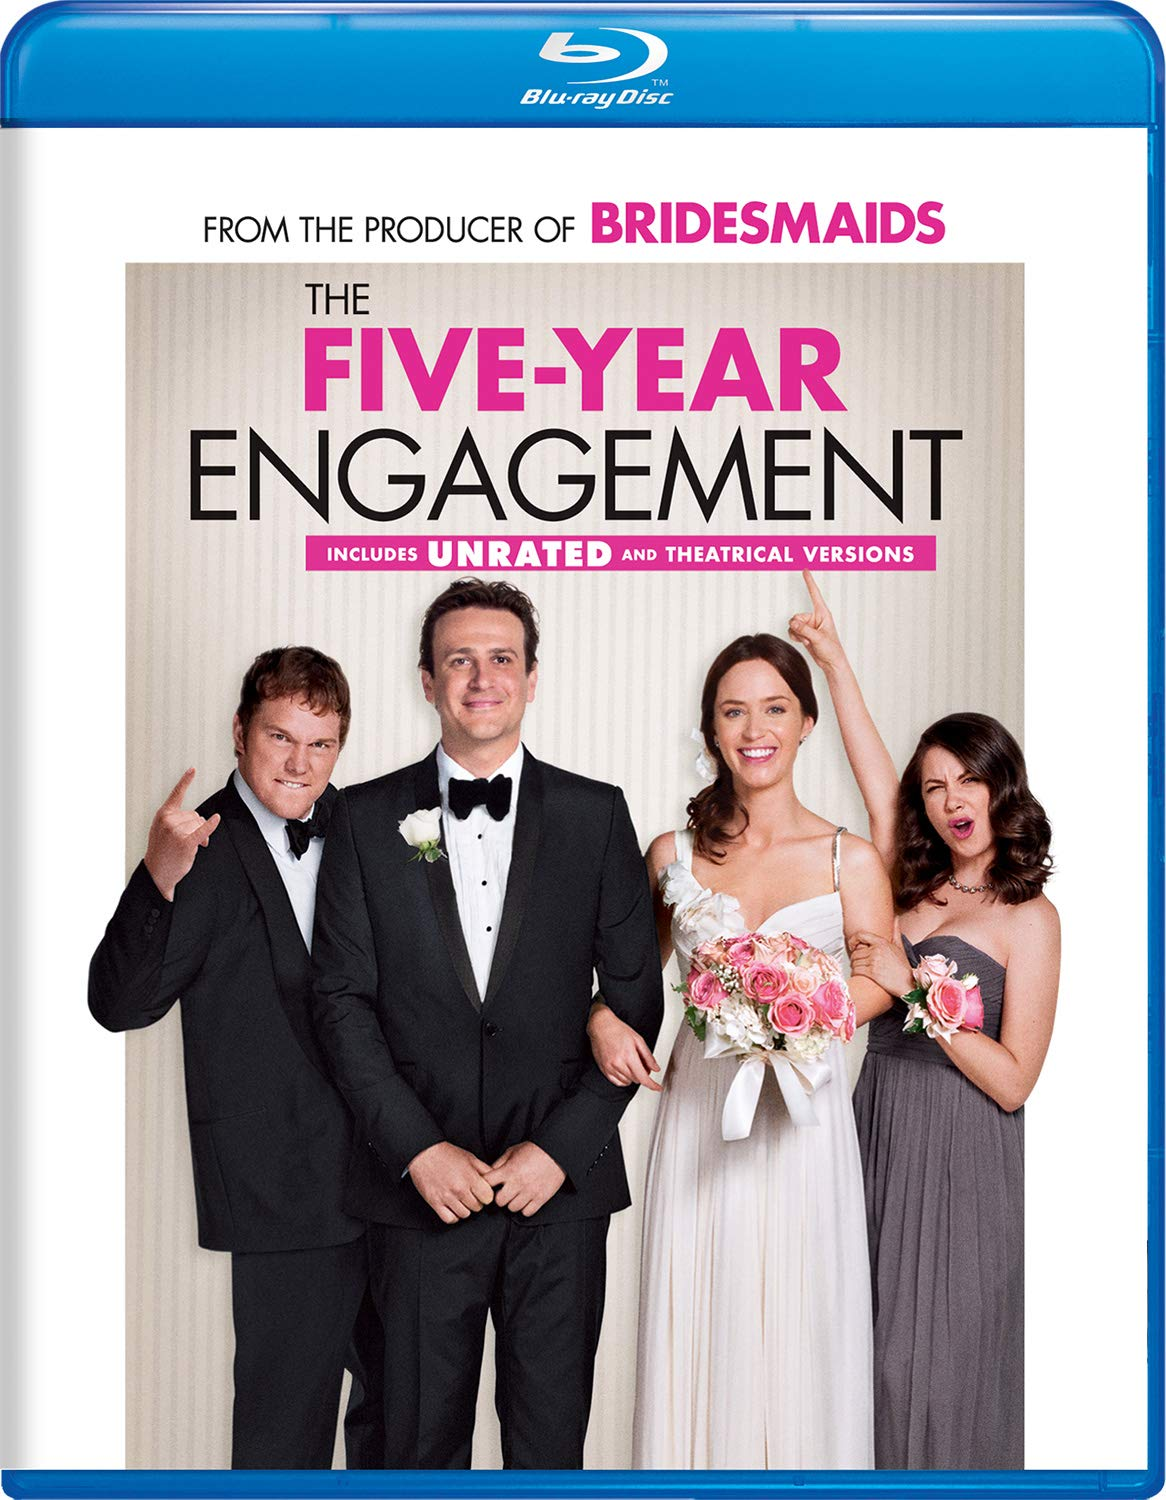 Blu-ray : The Five-year Engagement (Unrated Version)